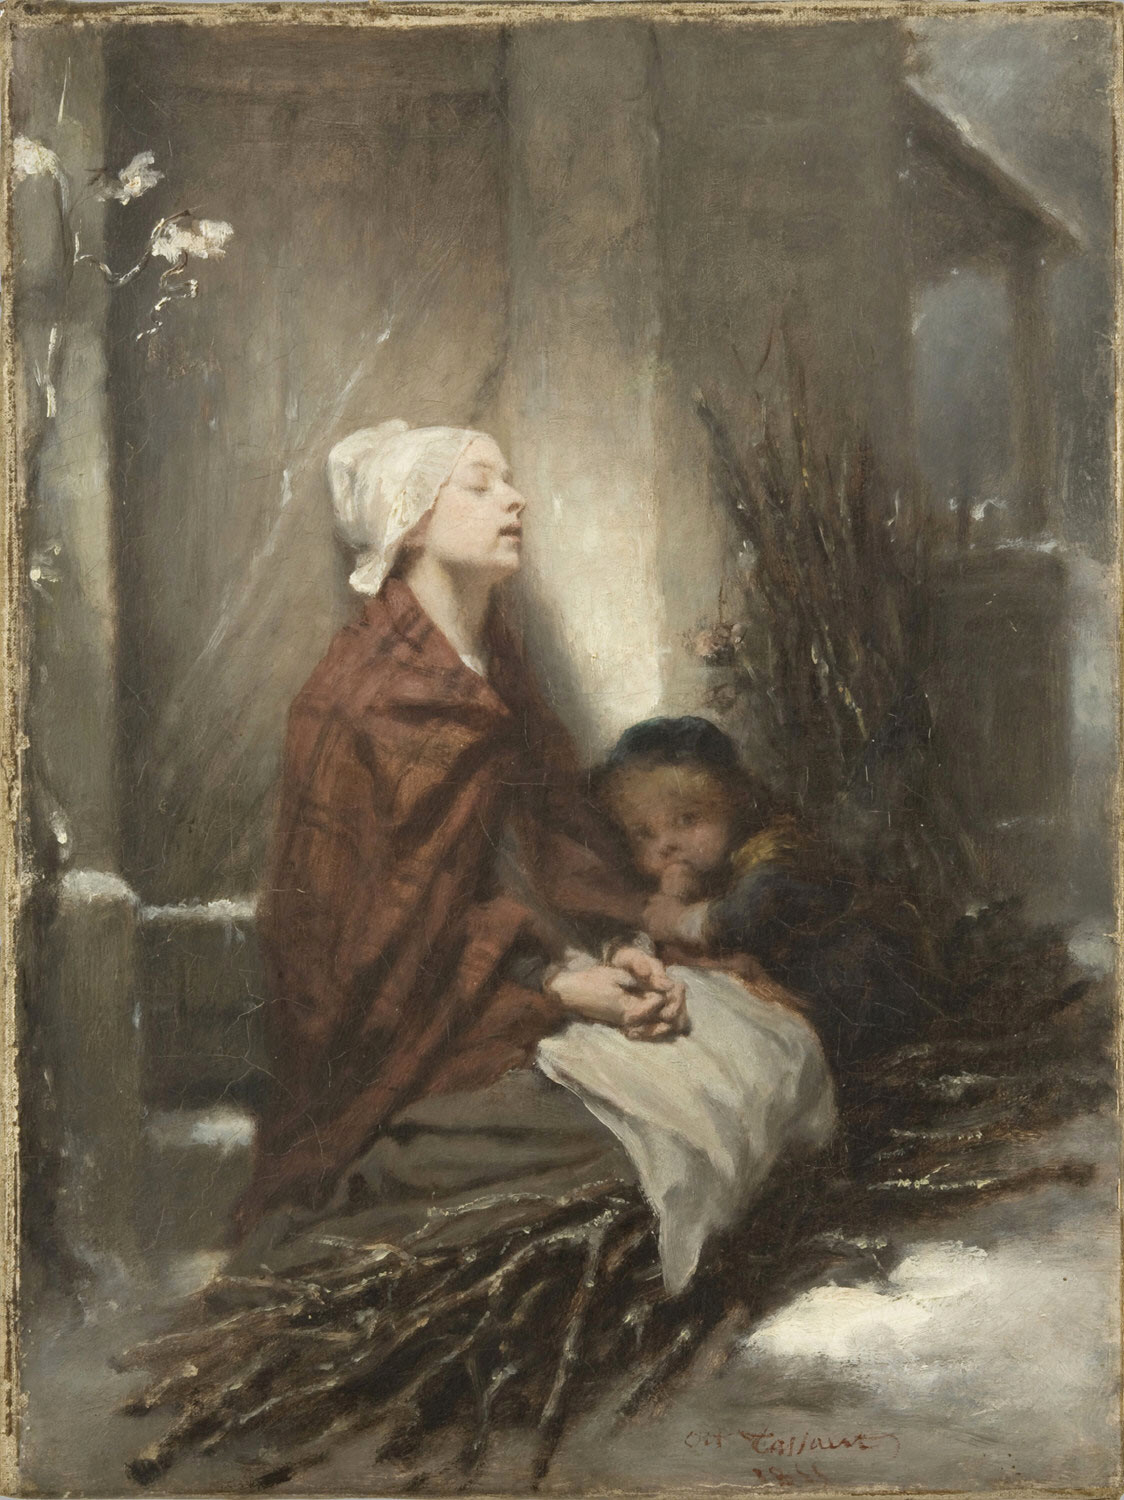 The Forlorn (Poor Children) by Octave Tassaert - 1855